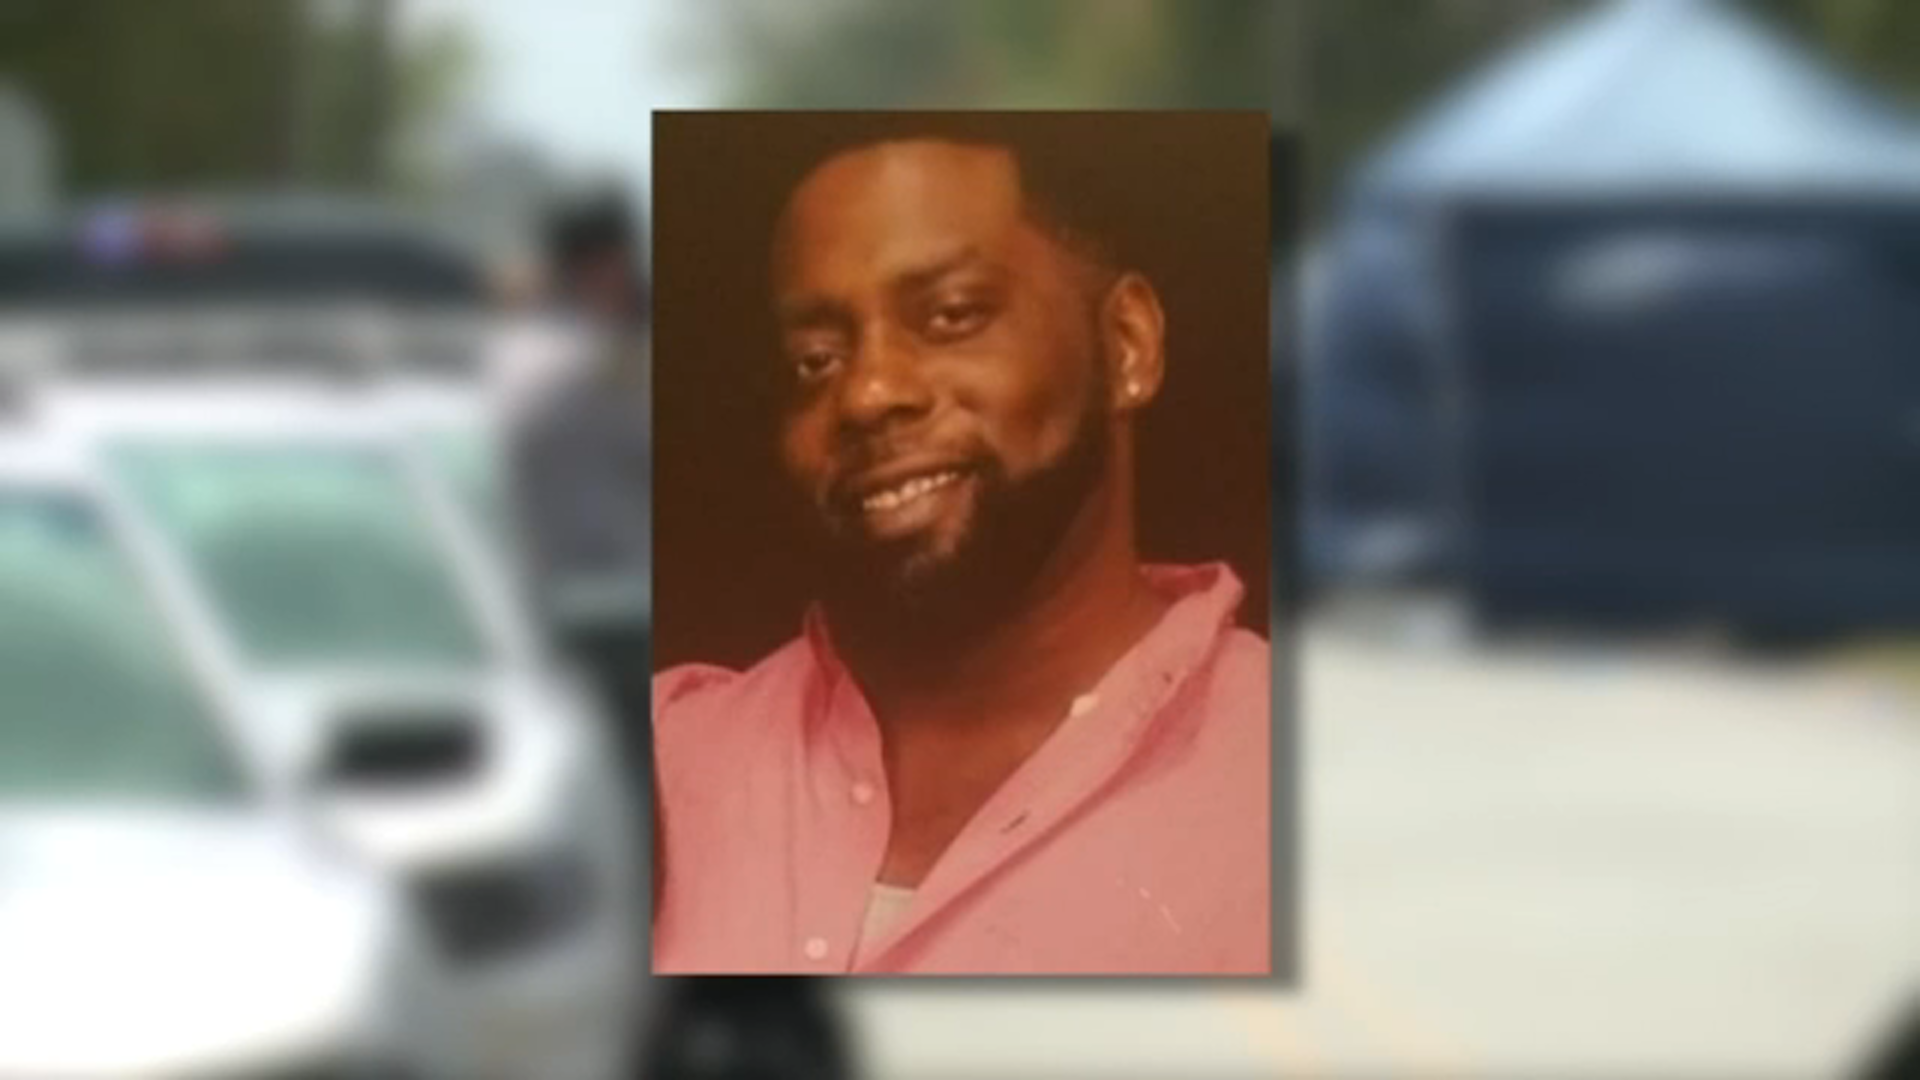 State Autopsy Confirms Andrew Brown Jr. Was Killed by Shot to Back of Head